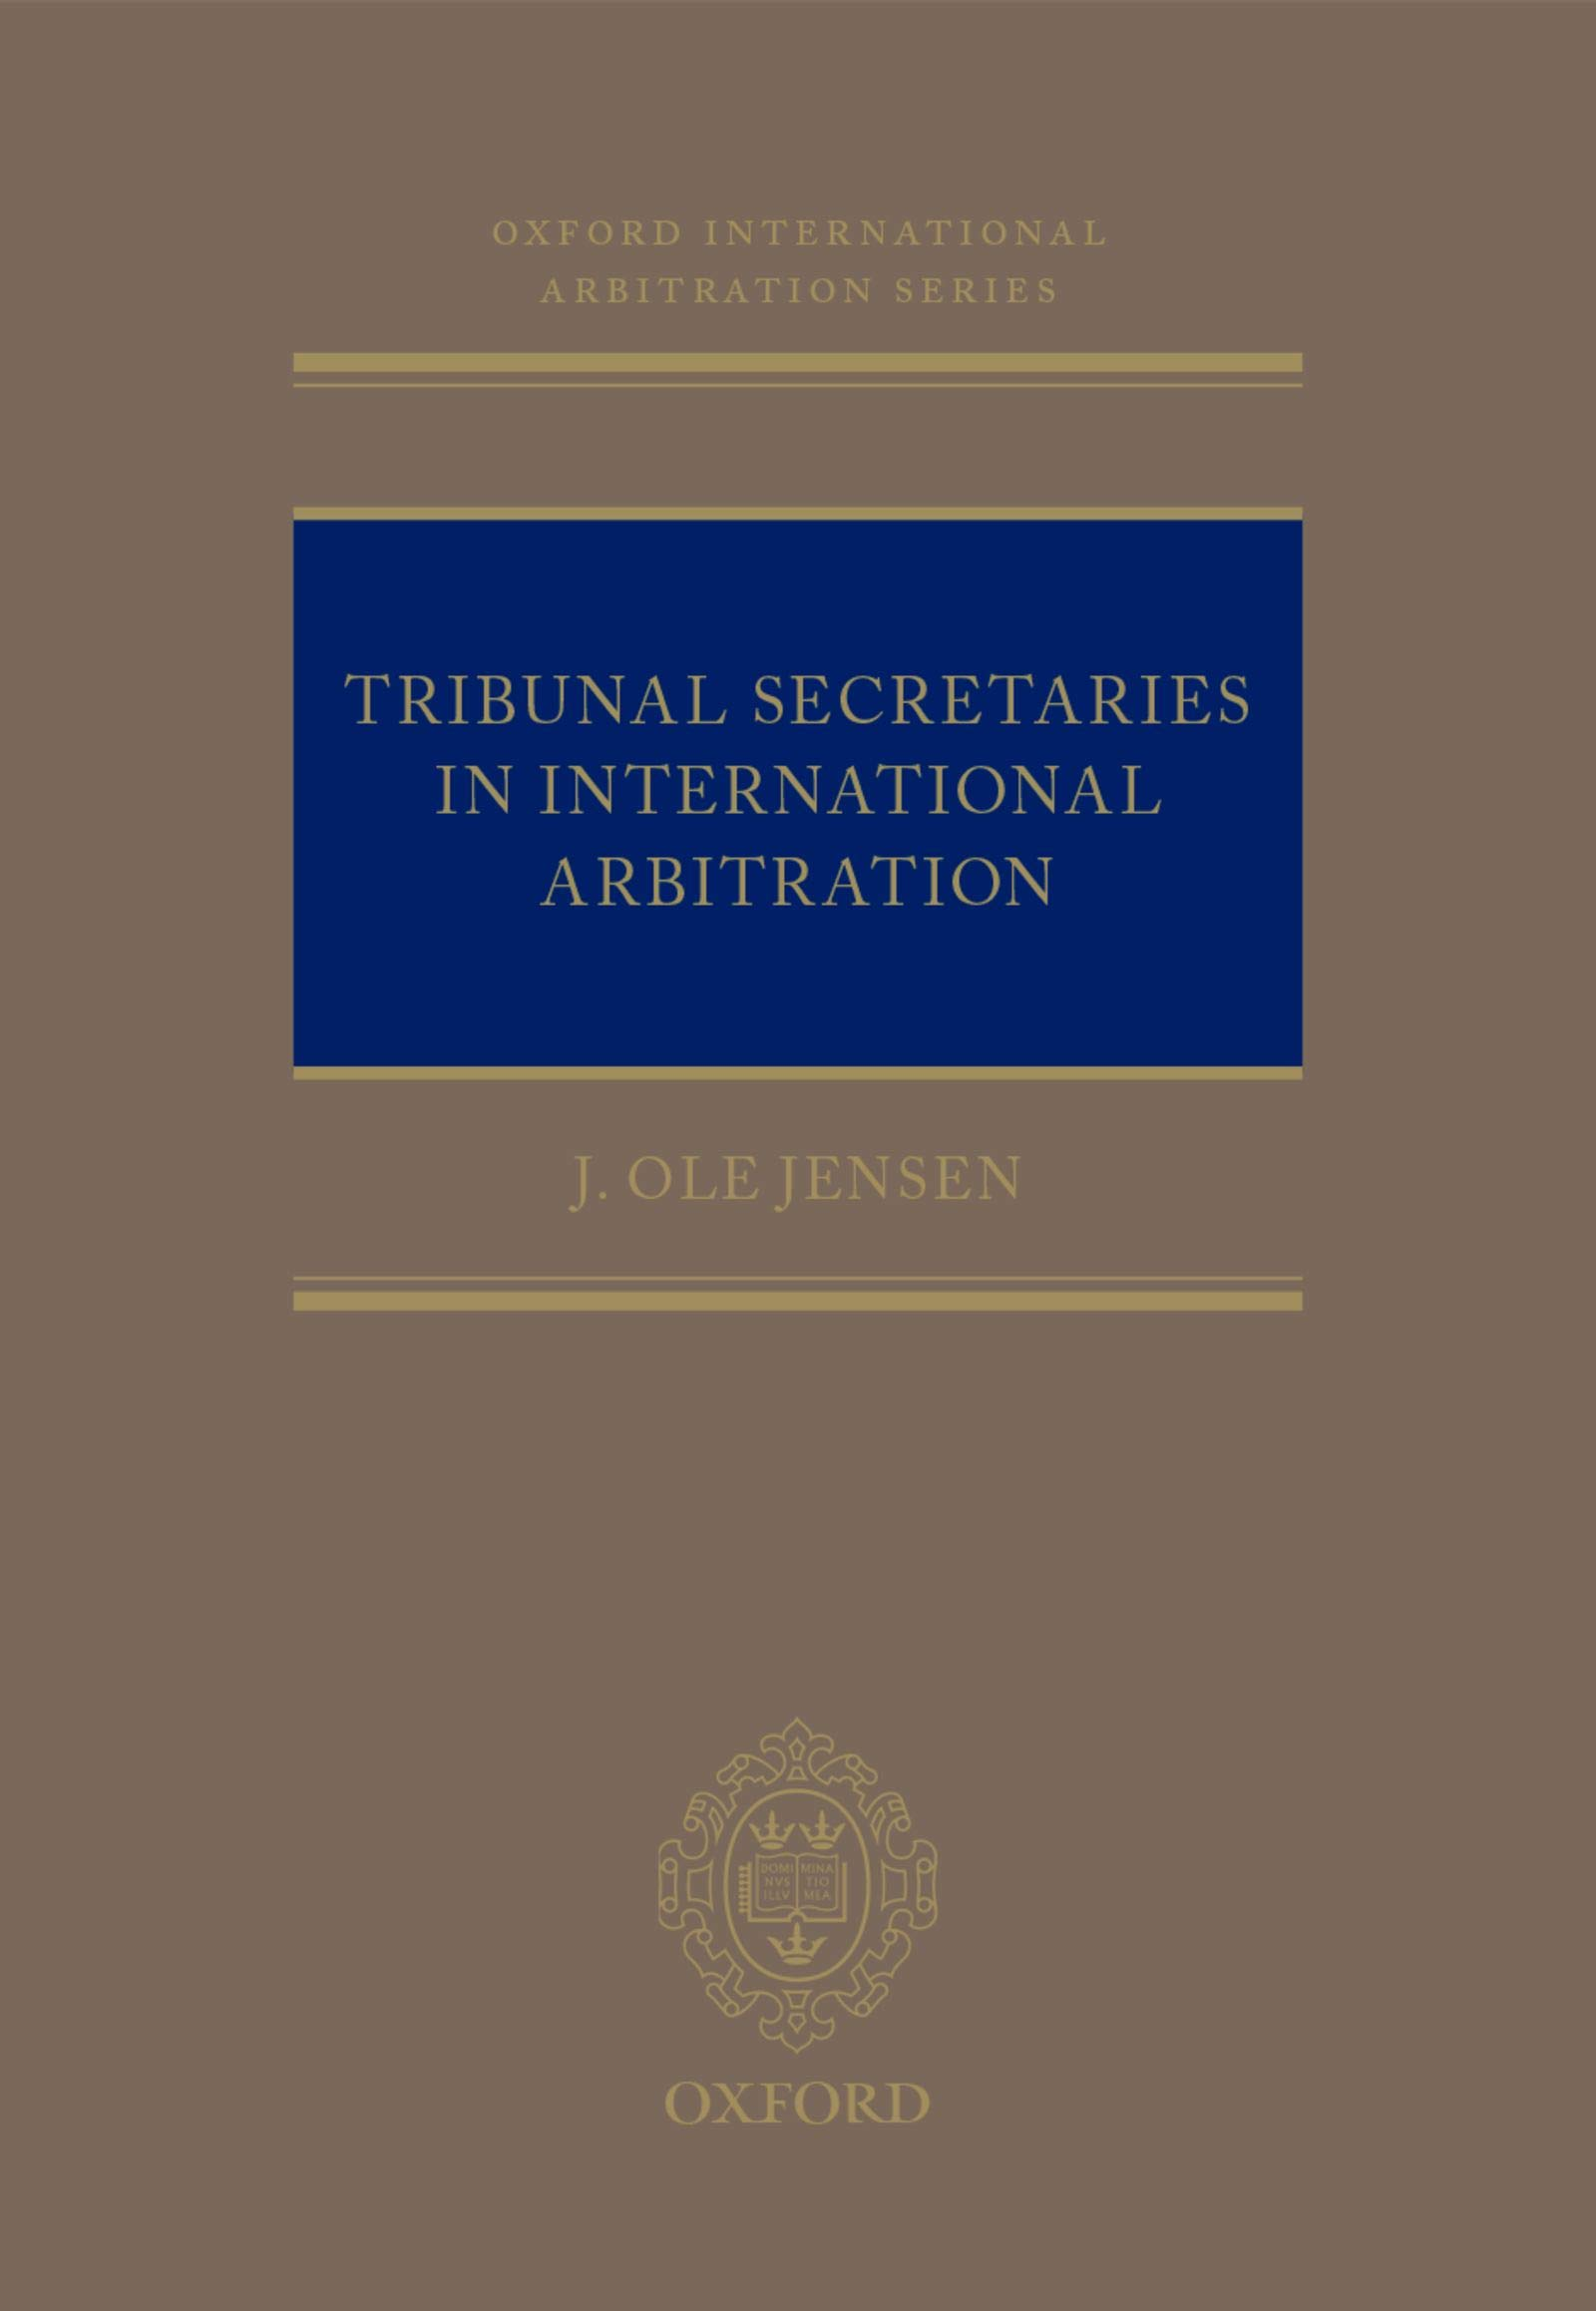 Image OfTribunal Secretaries In International Arbitration (Oxford International Arbitration Series) (English Edition)